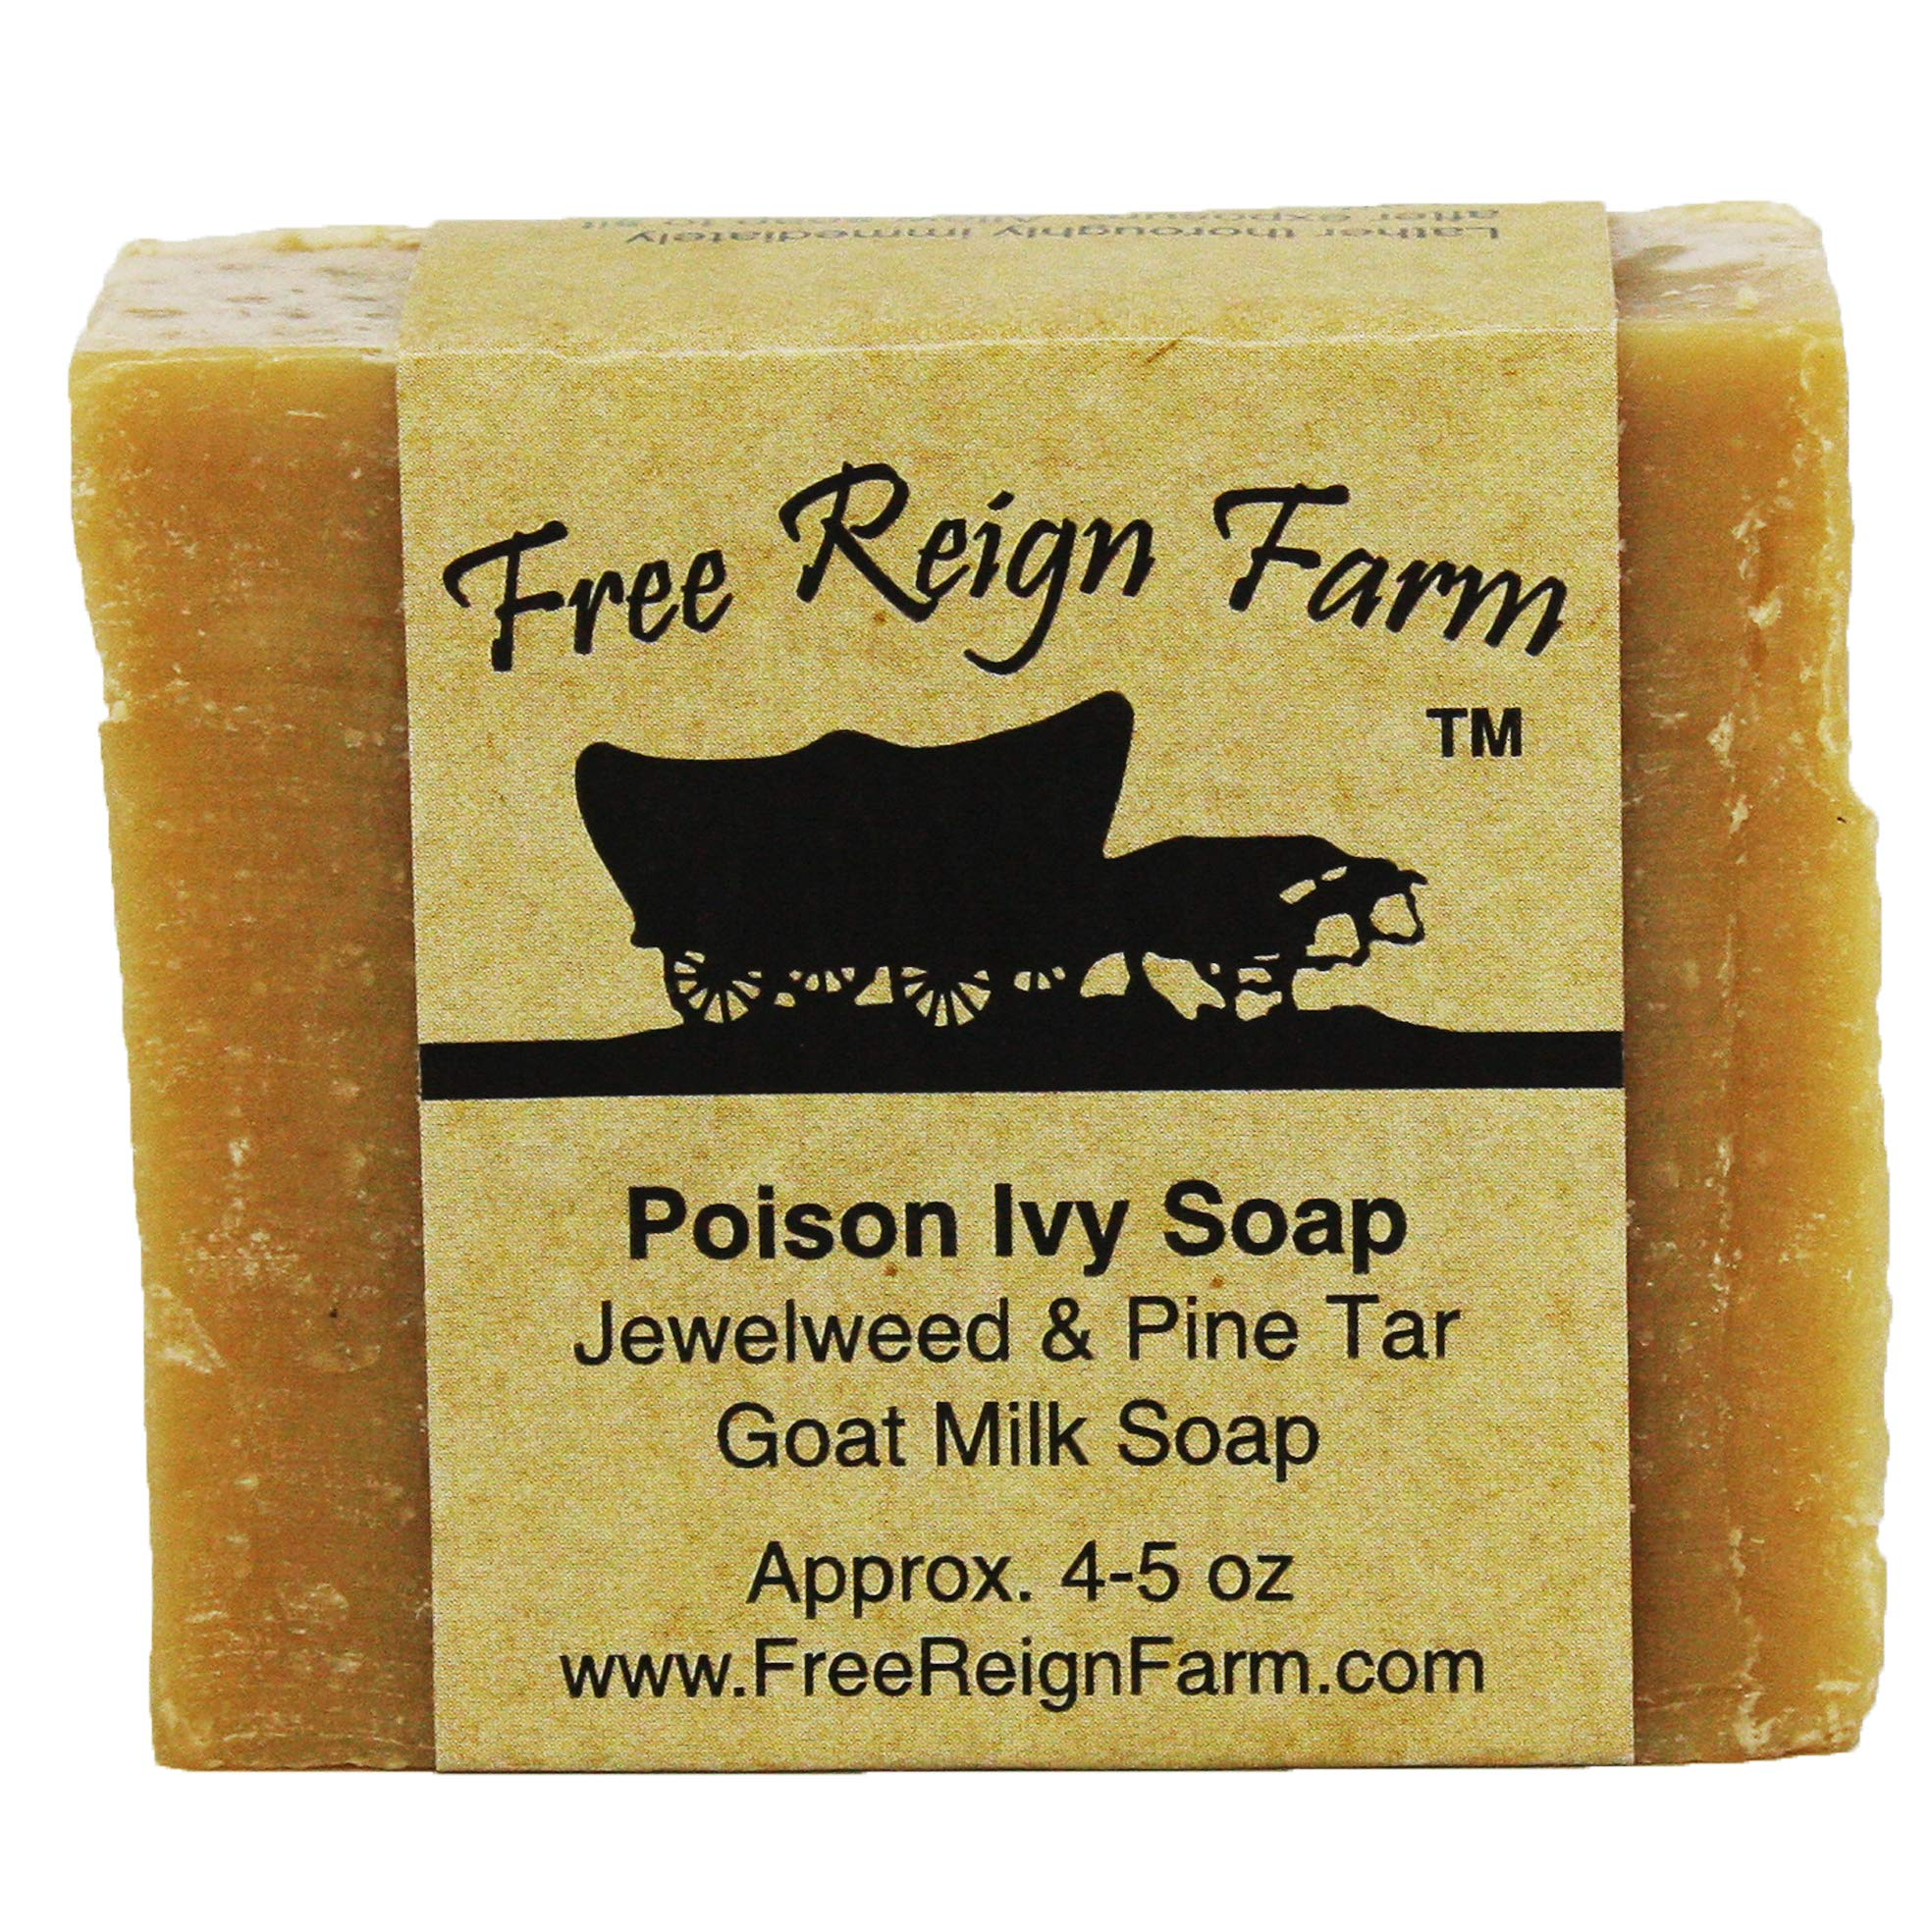 Poison Ivy Soap Infused with Jewelweed Extract, Made with All-Natural Goat's Milk for Soothing Poison Ivy Treatment (2) by RWB Enterprises